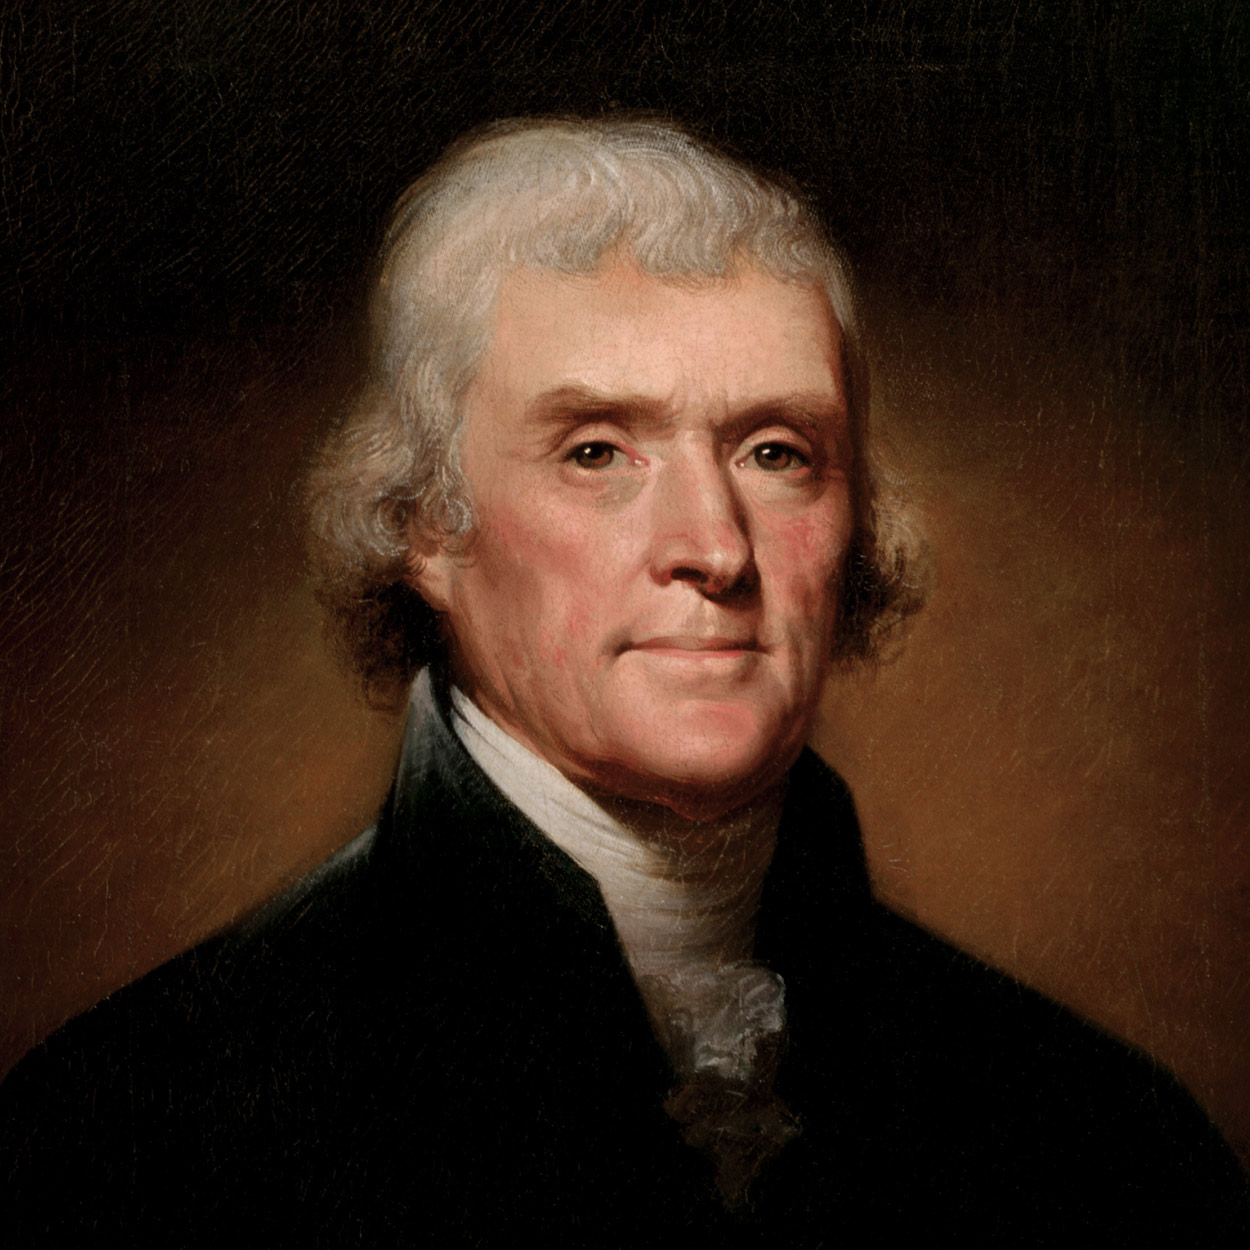 Portrait of Thomas Jefferson, the 3rd President of the United States